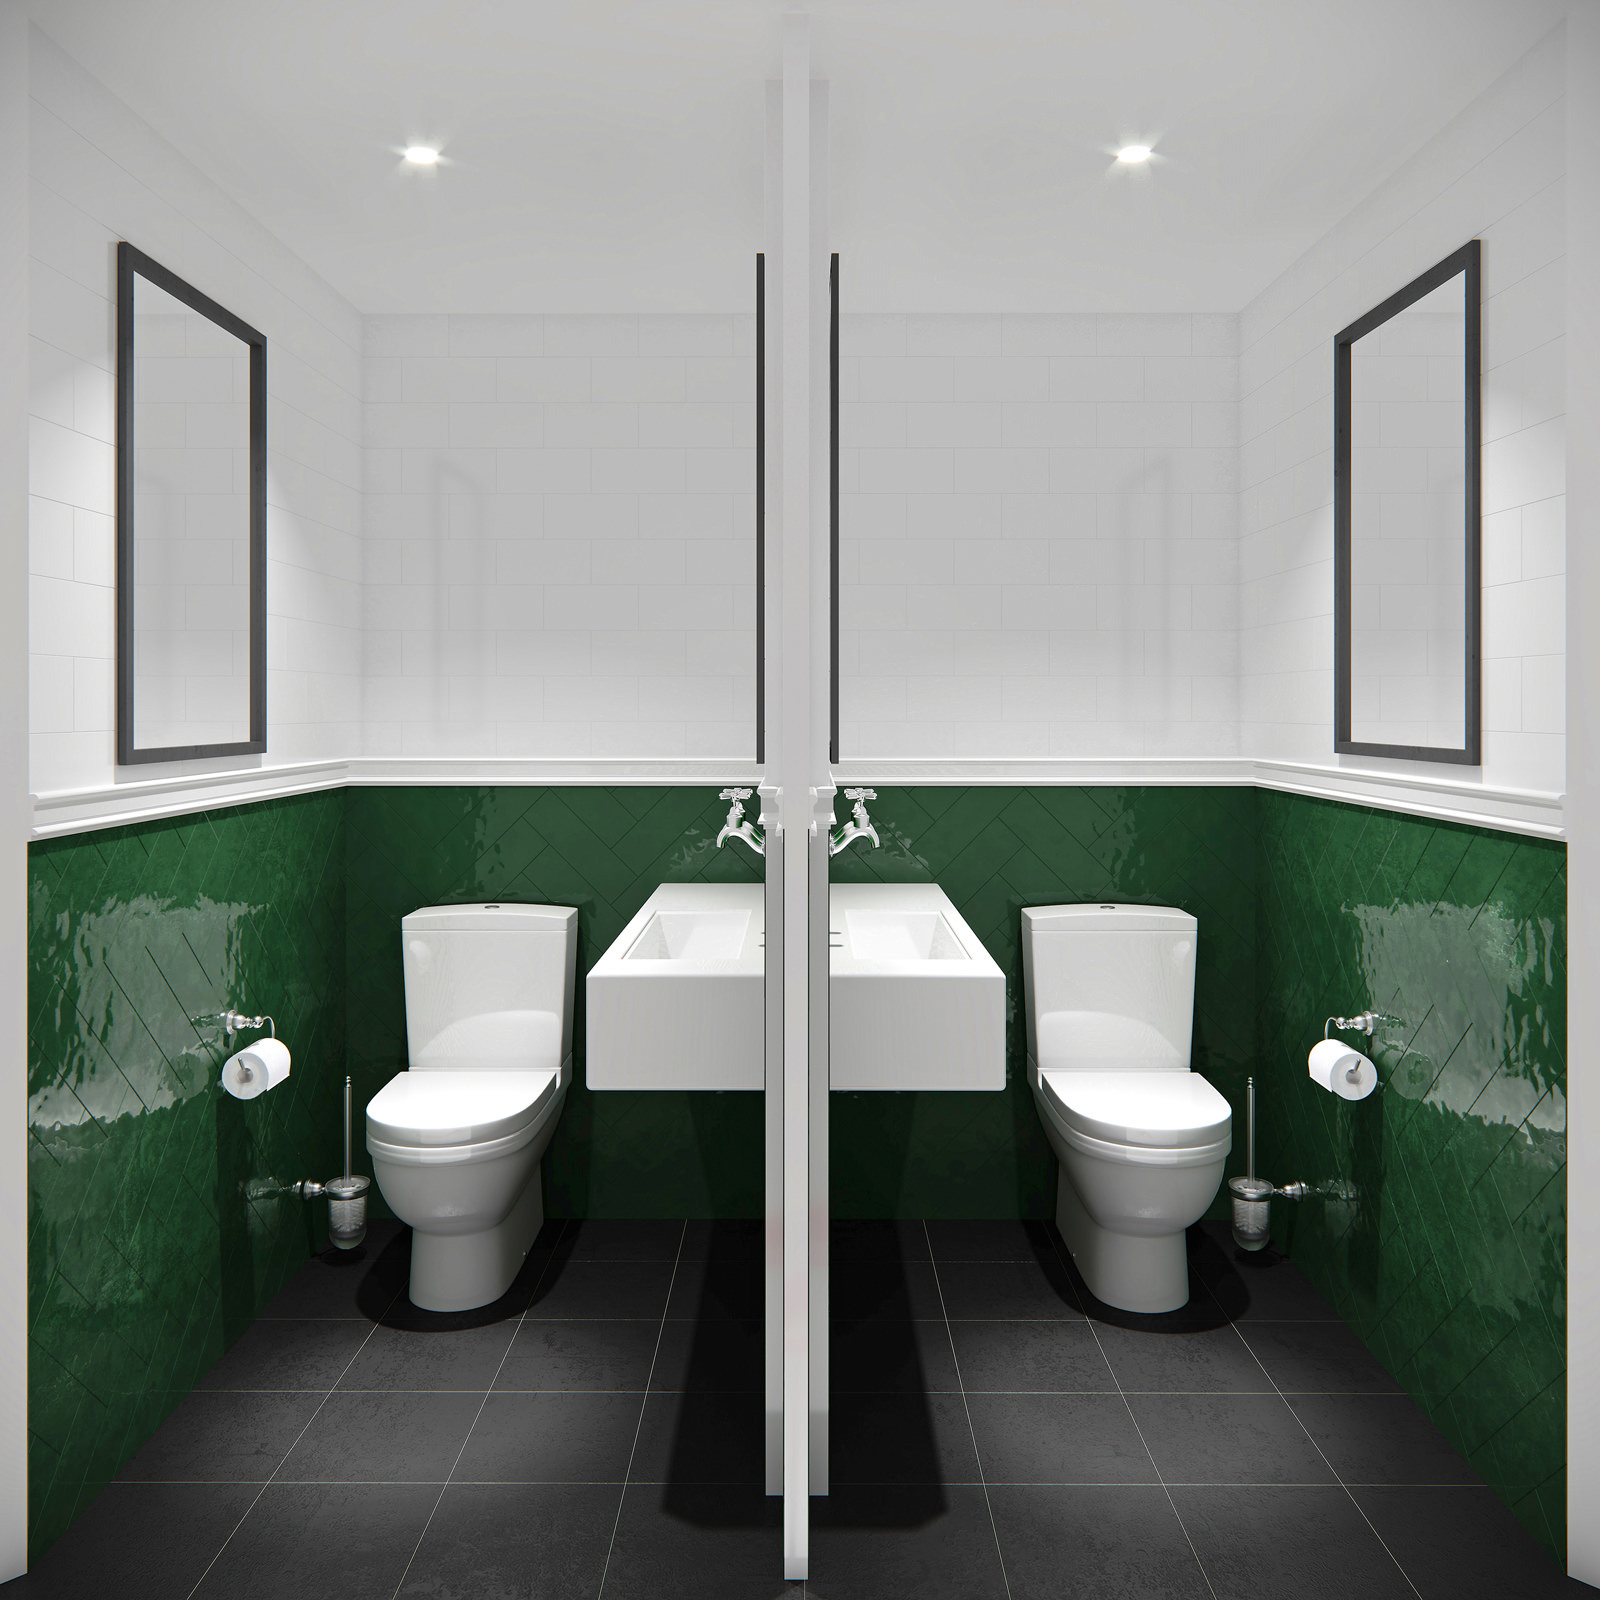 3D render of two identical restrooms with green and white walls and black tiled floor